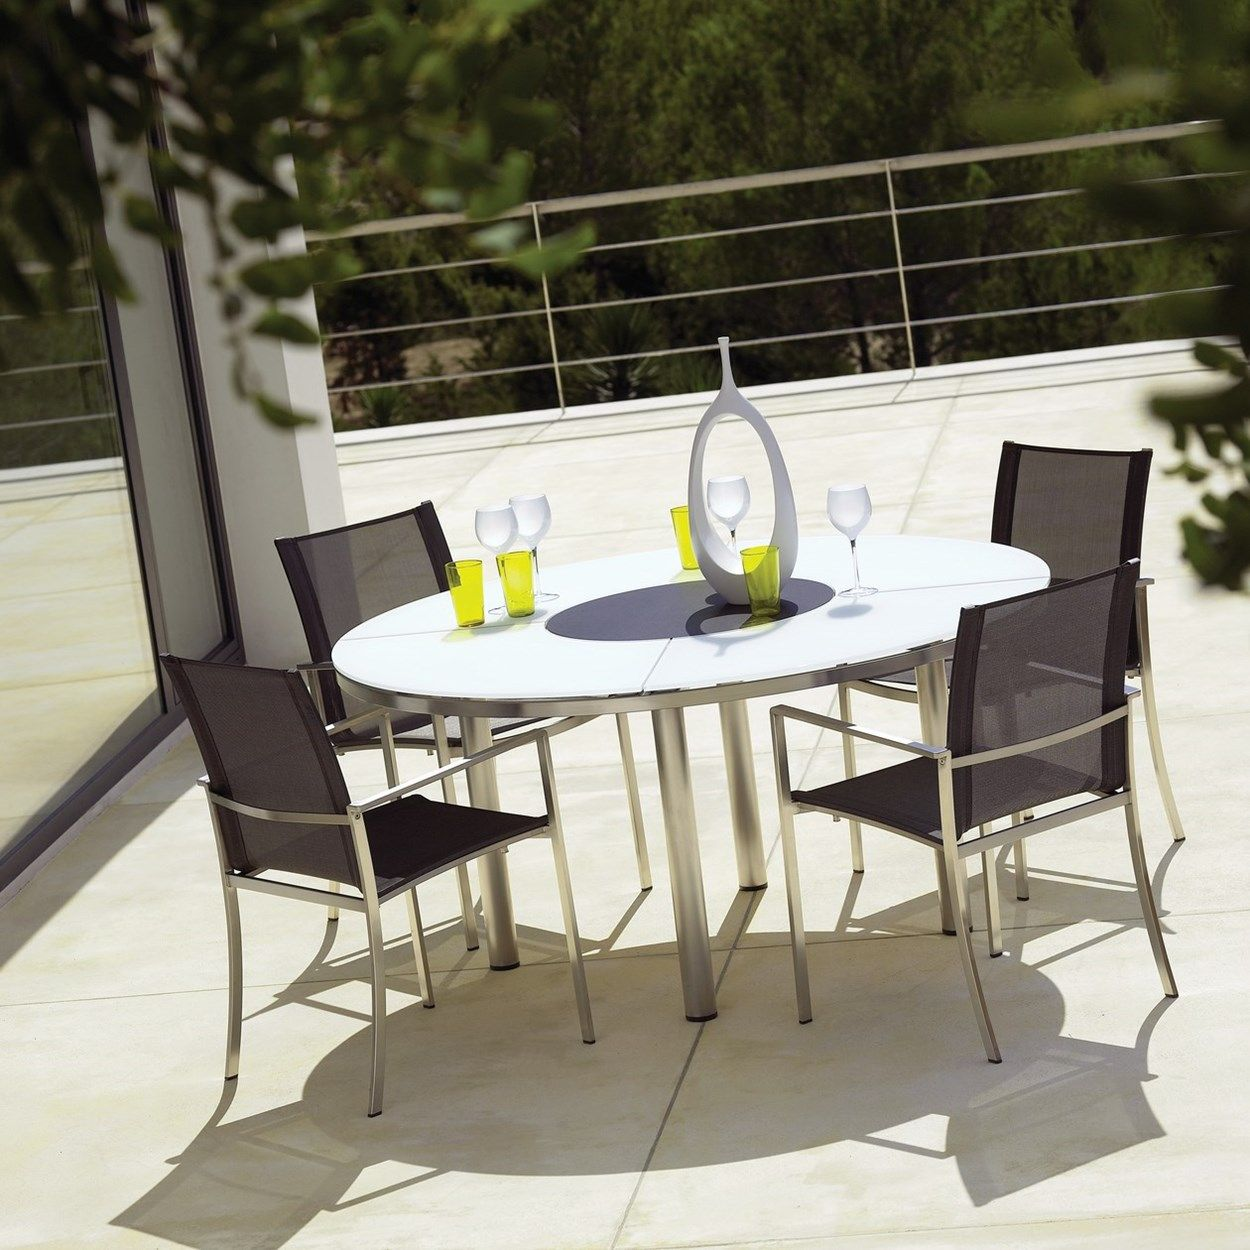 Breeze Carrara Marble Luxury Console Round Outdoor Dining Table